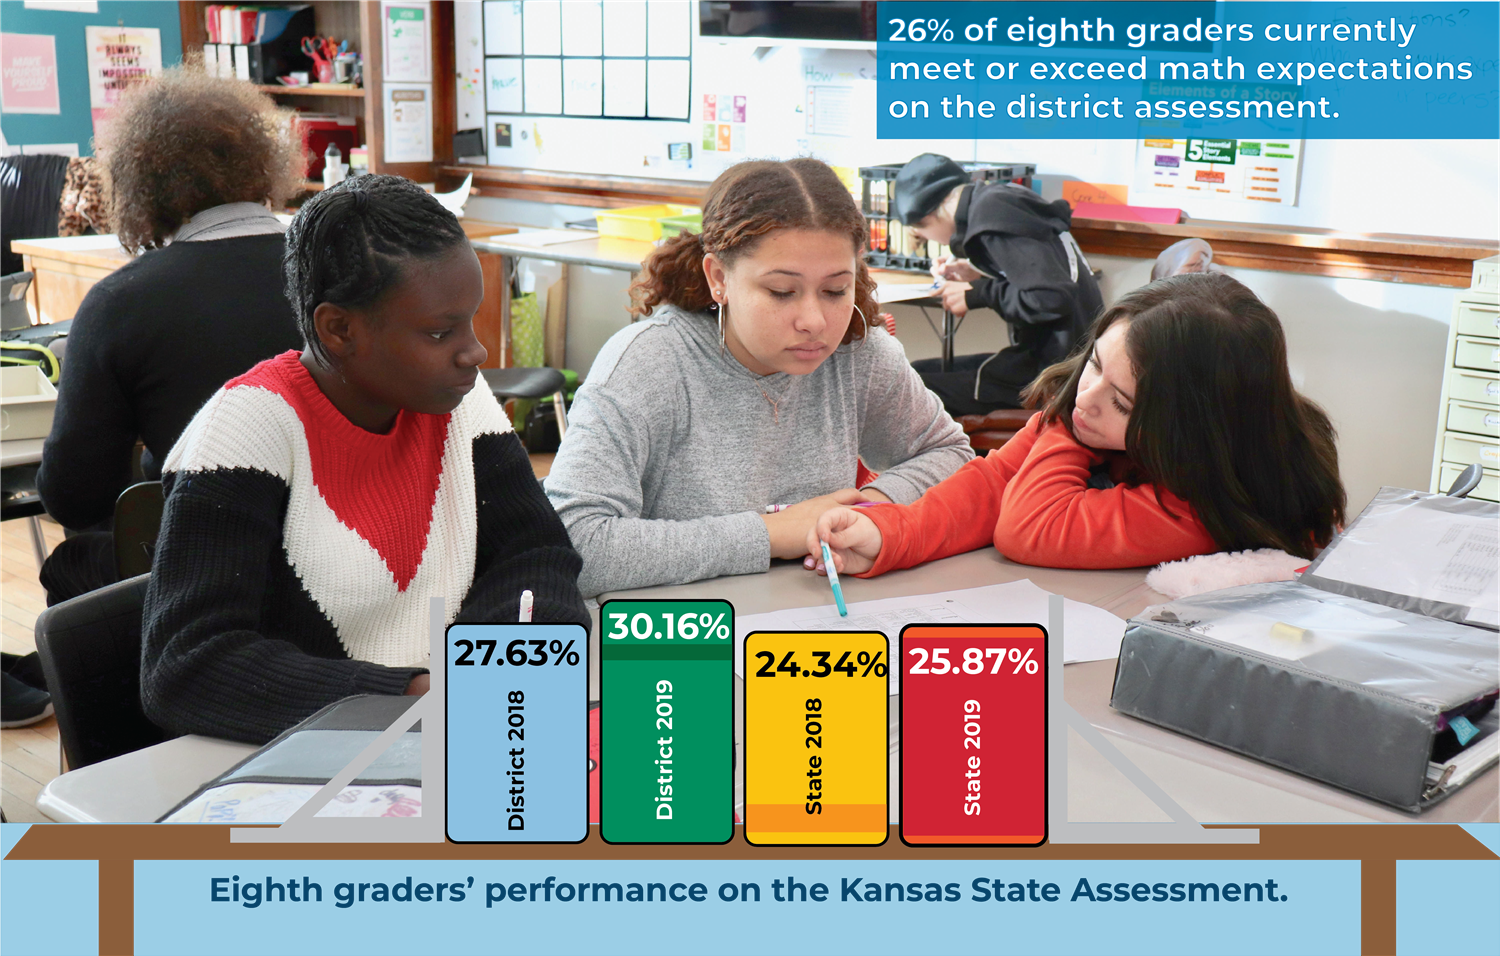 Eighth graders performance on the Kansas State Assessment showing a three percent increase.